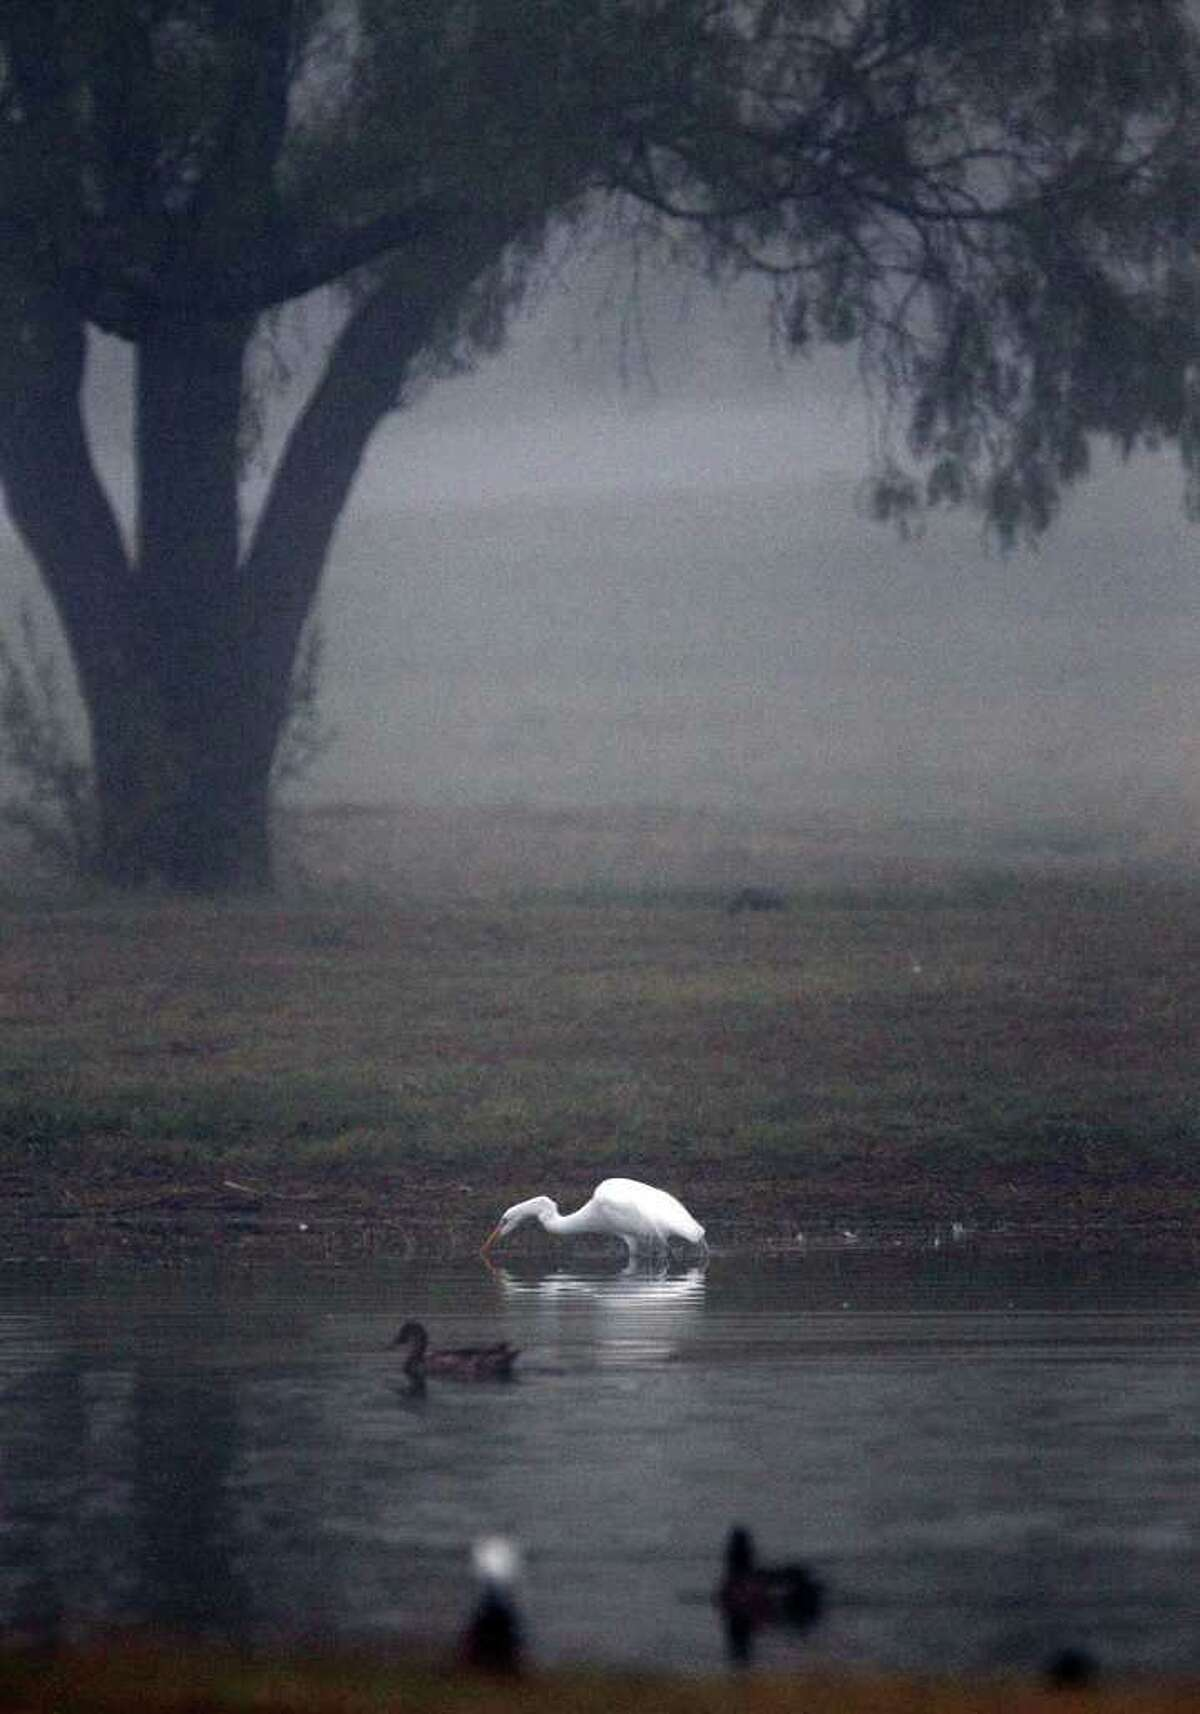 A great egret drinks from a pond at the Olmos Basin Golf Course. The morning fog Tuesday set the stage for a cloudy day that saw occasional drizzle. things aren't expected to cjange much today.